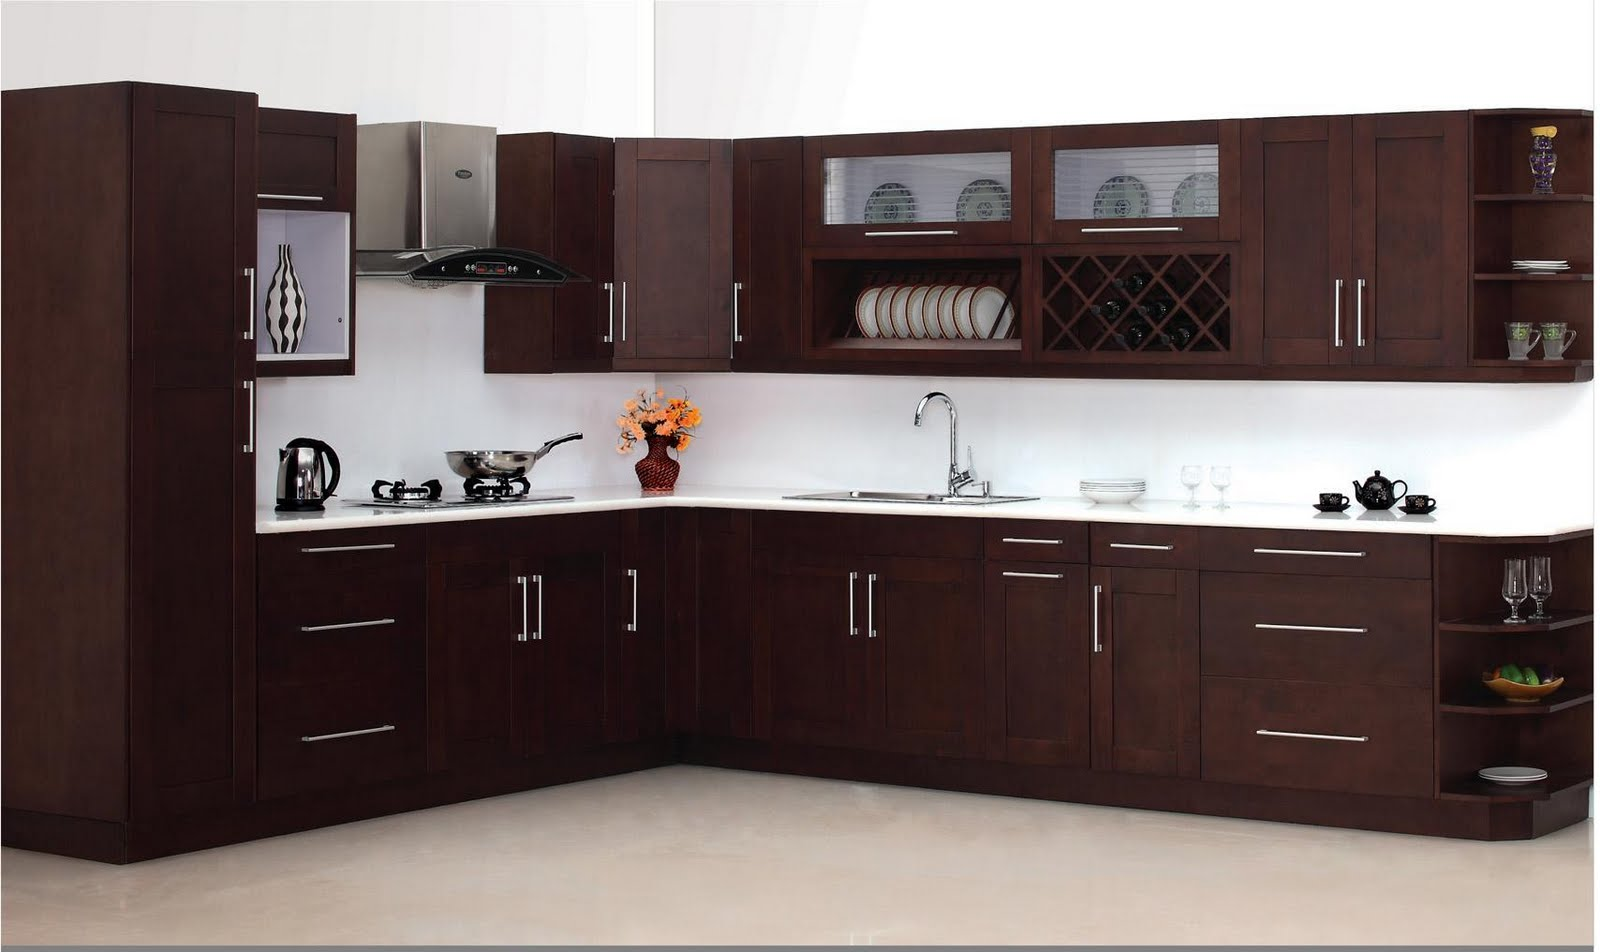 espresso shaker maple cabinets are designed for the true lover of